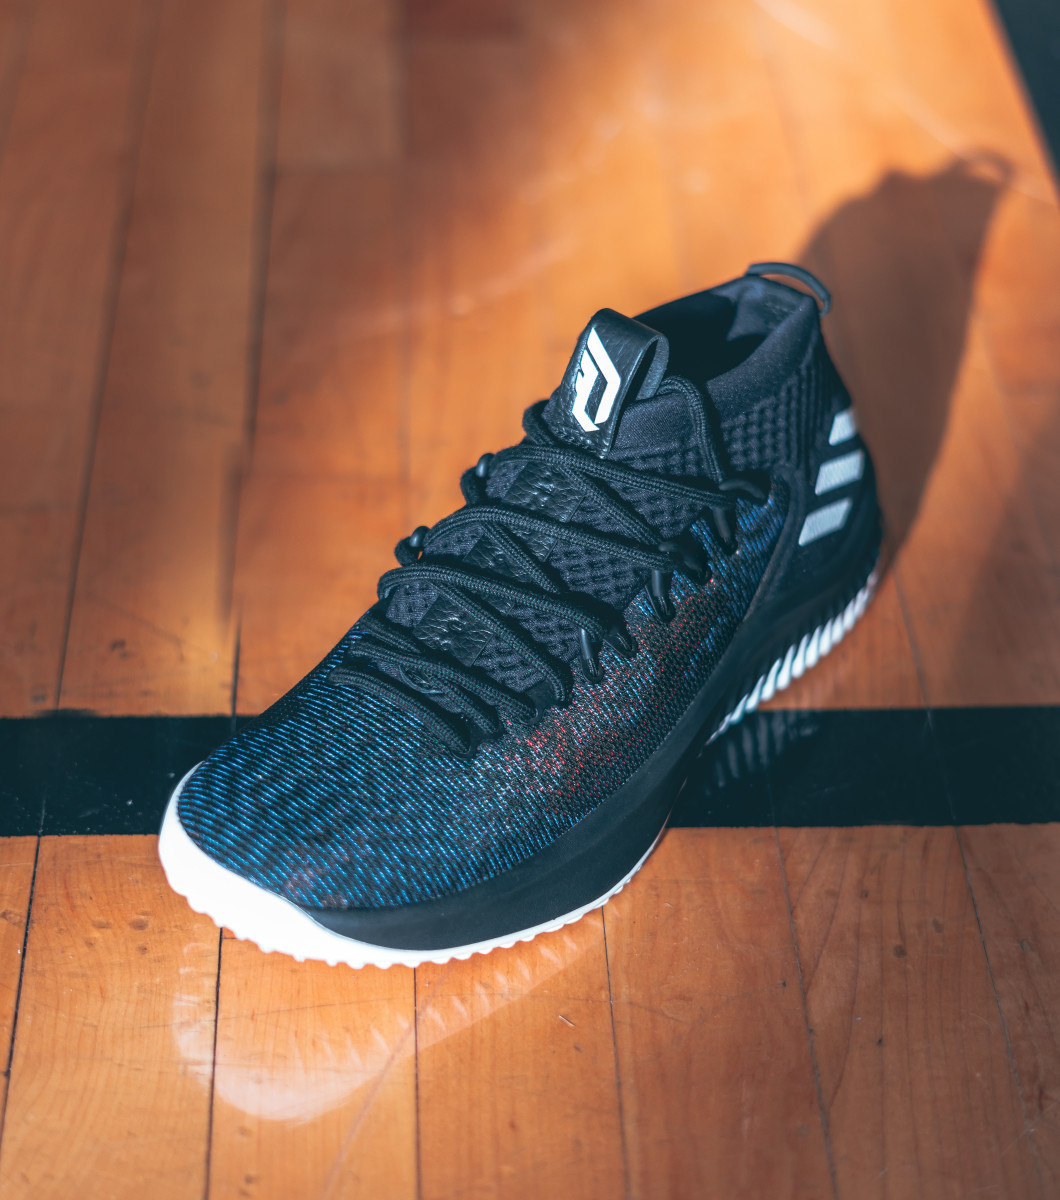 adidas-dame-4-static-rose-city-colorways-03